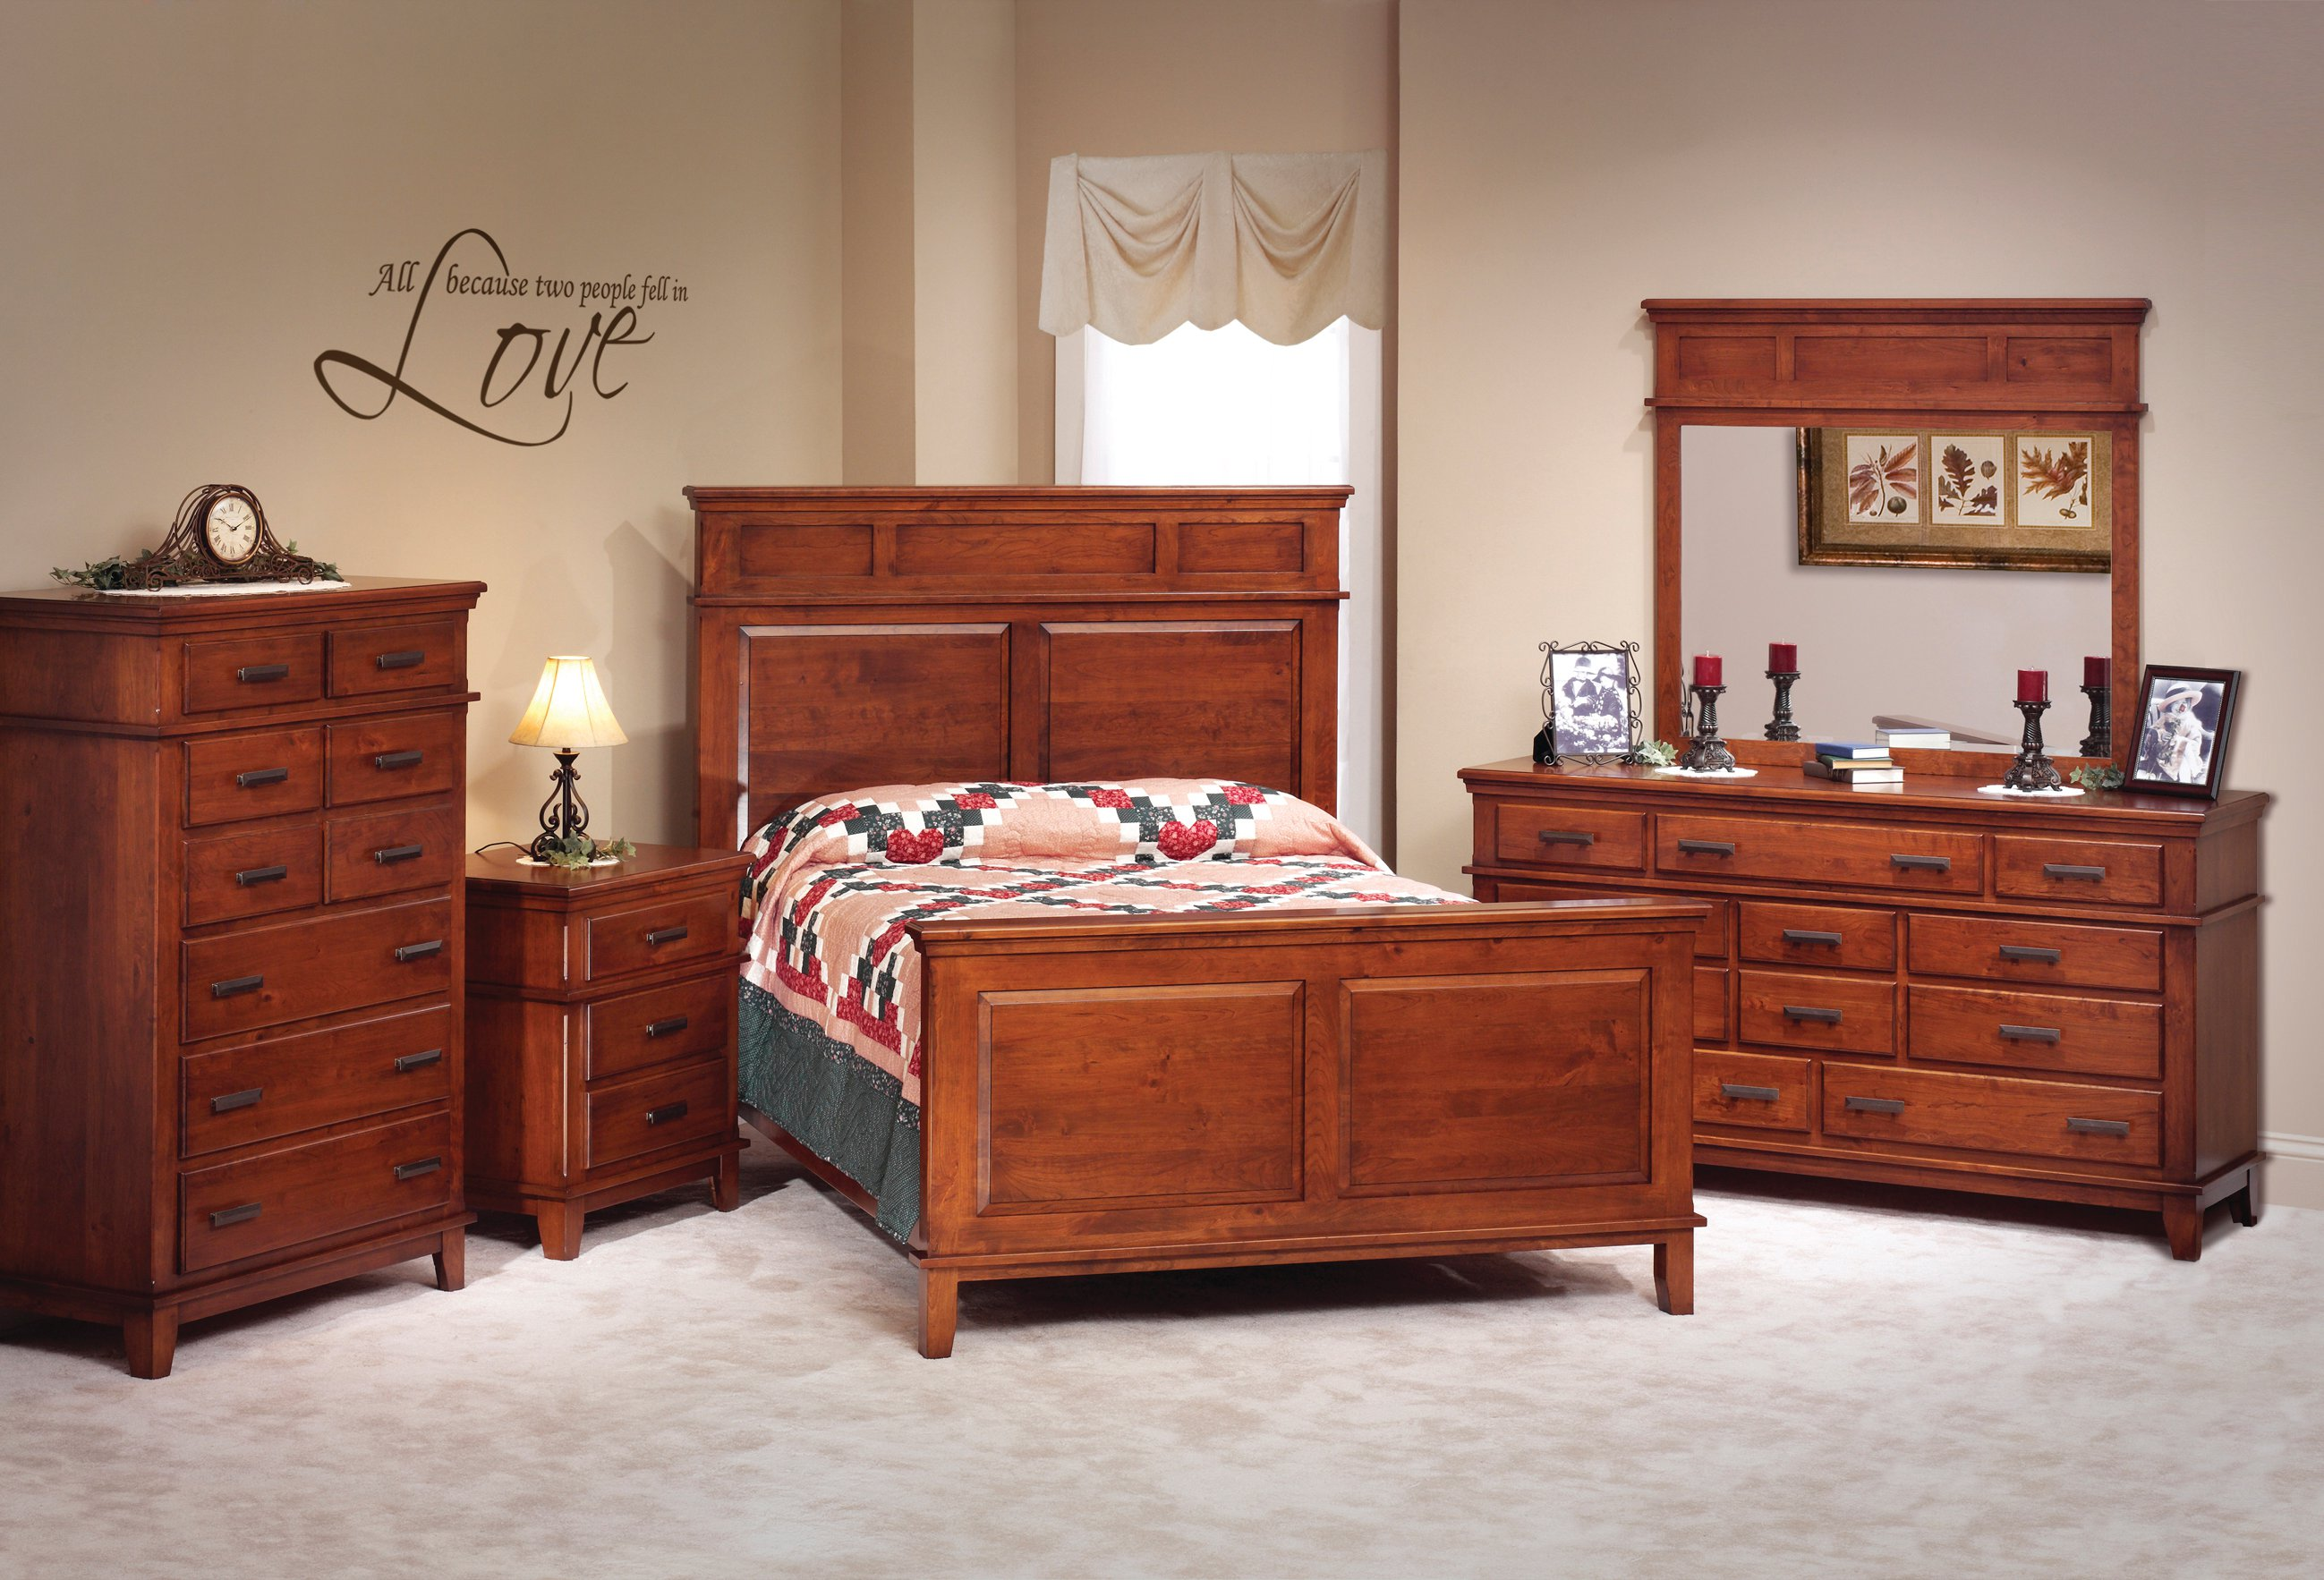 Shaker Bedroom Furniture Handcrafted Solid Wood Amish Bedroom Furniture Collections